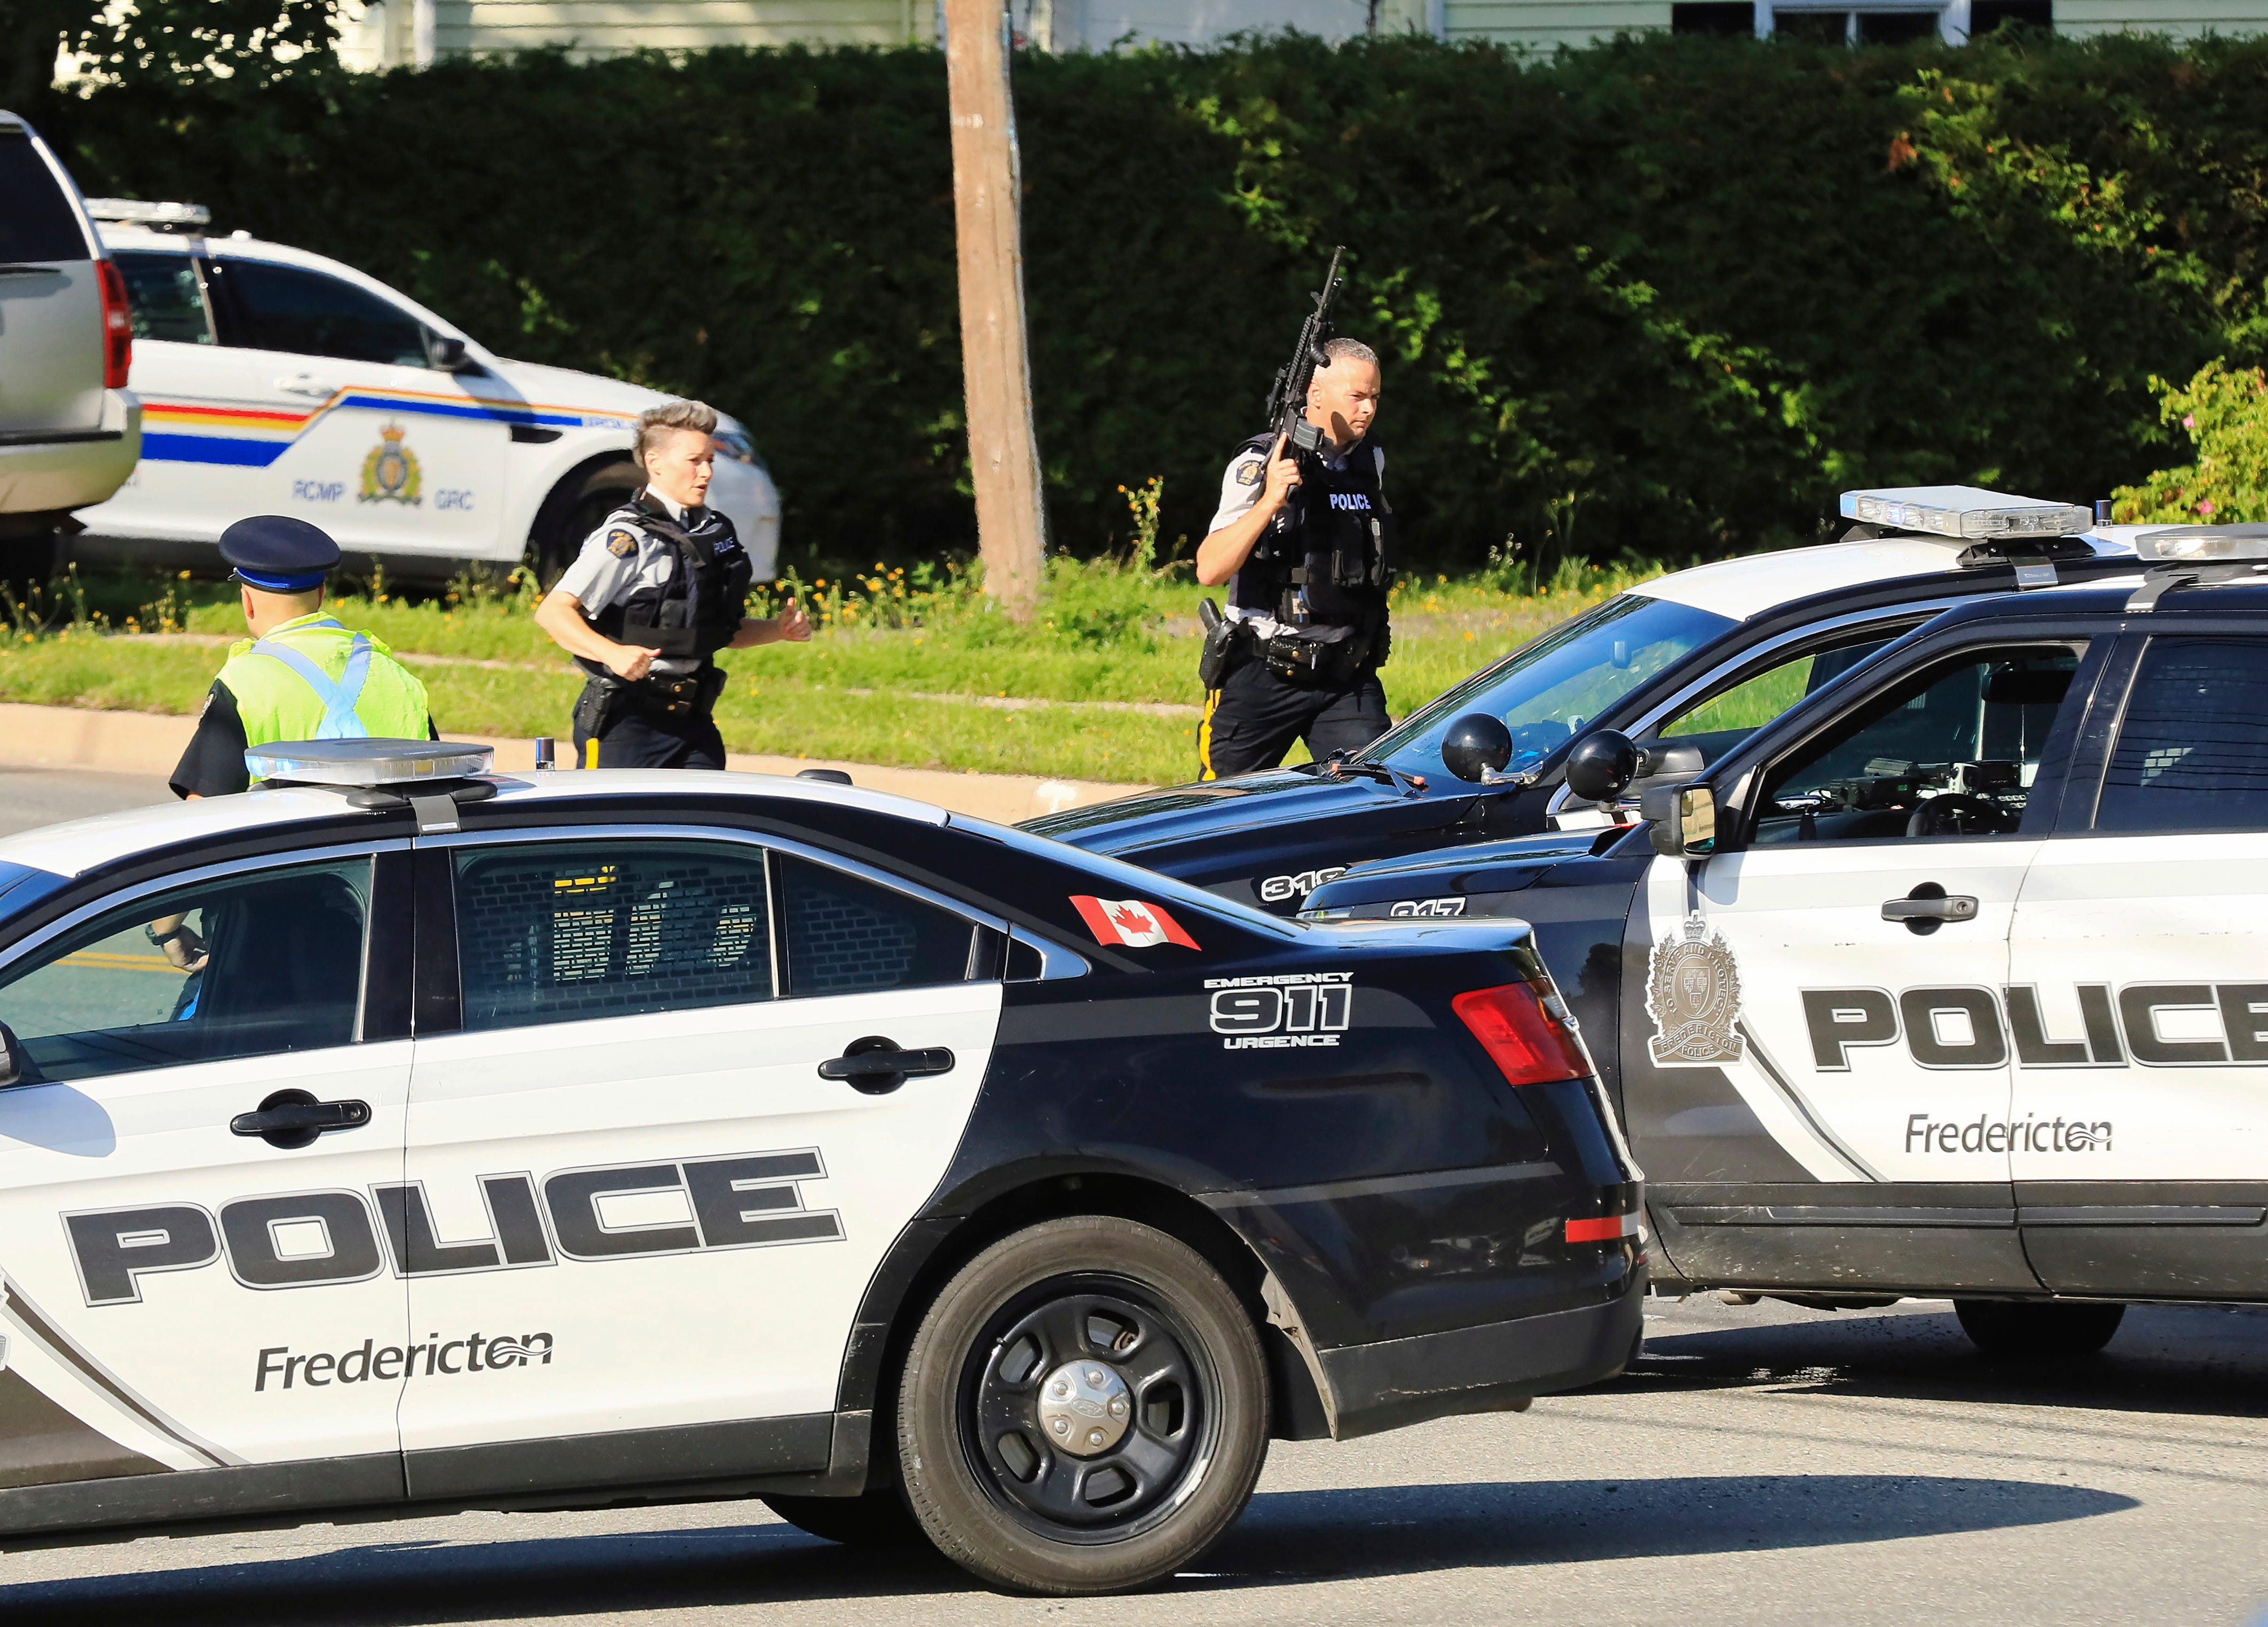 New Brunswick shooting: Suspect in custody, 4 dead in Fredericton Canada